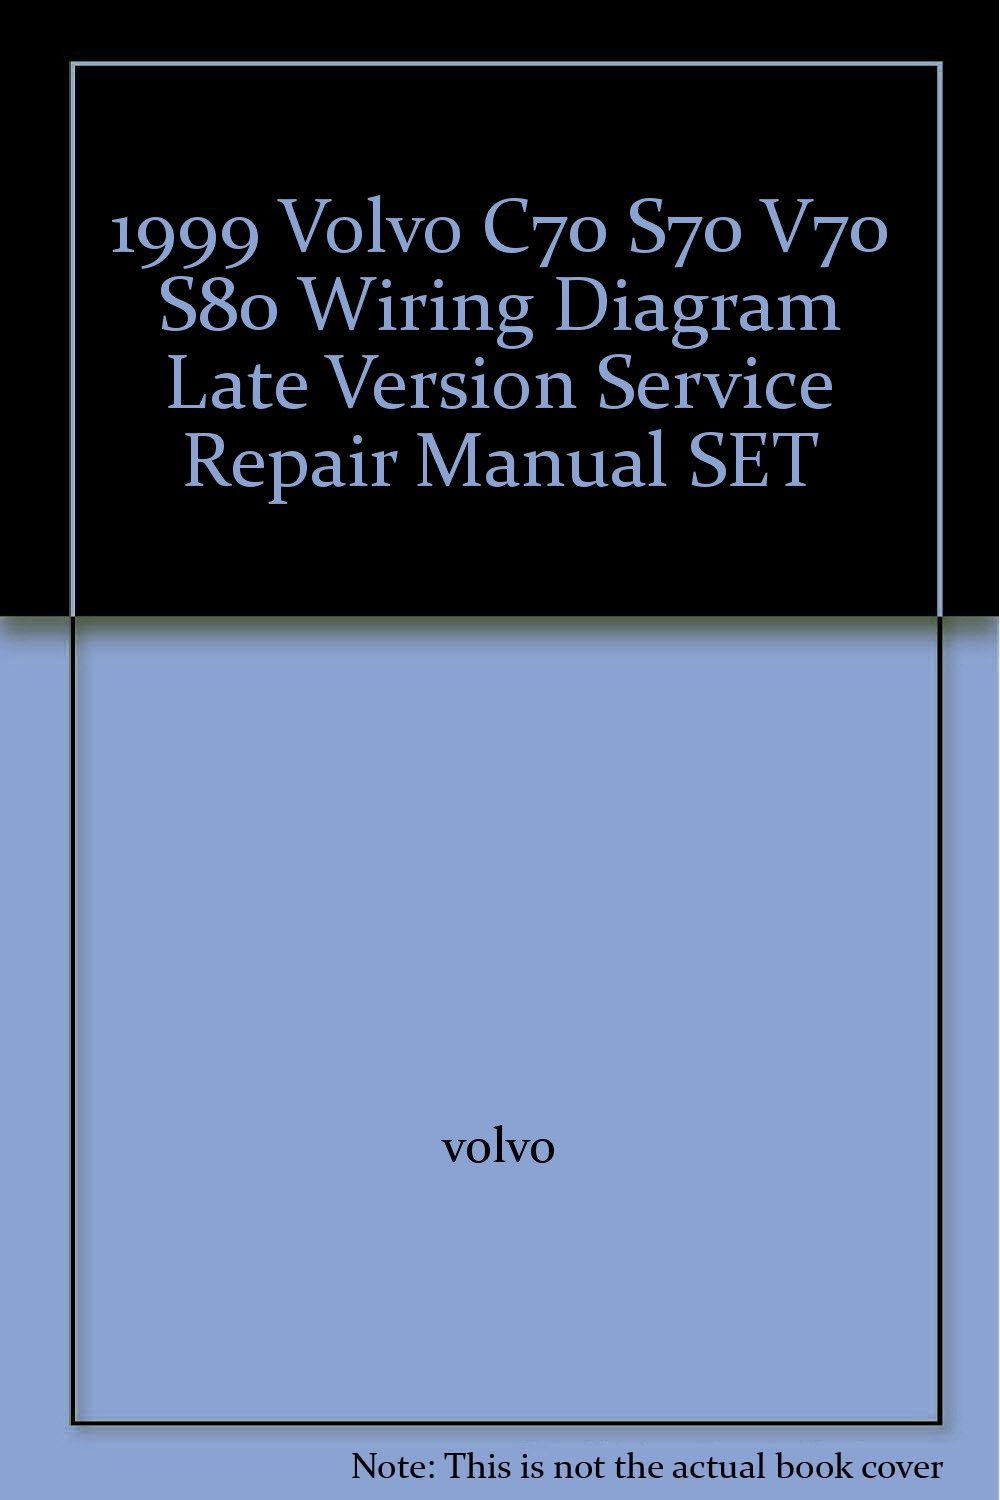 99 Volvo S80 Wiring Diagram The Portal And Forum Of C70 Engine 1999 S70 V70 Late Version Service Rh Amazon Com Parts Semi Truck